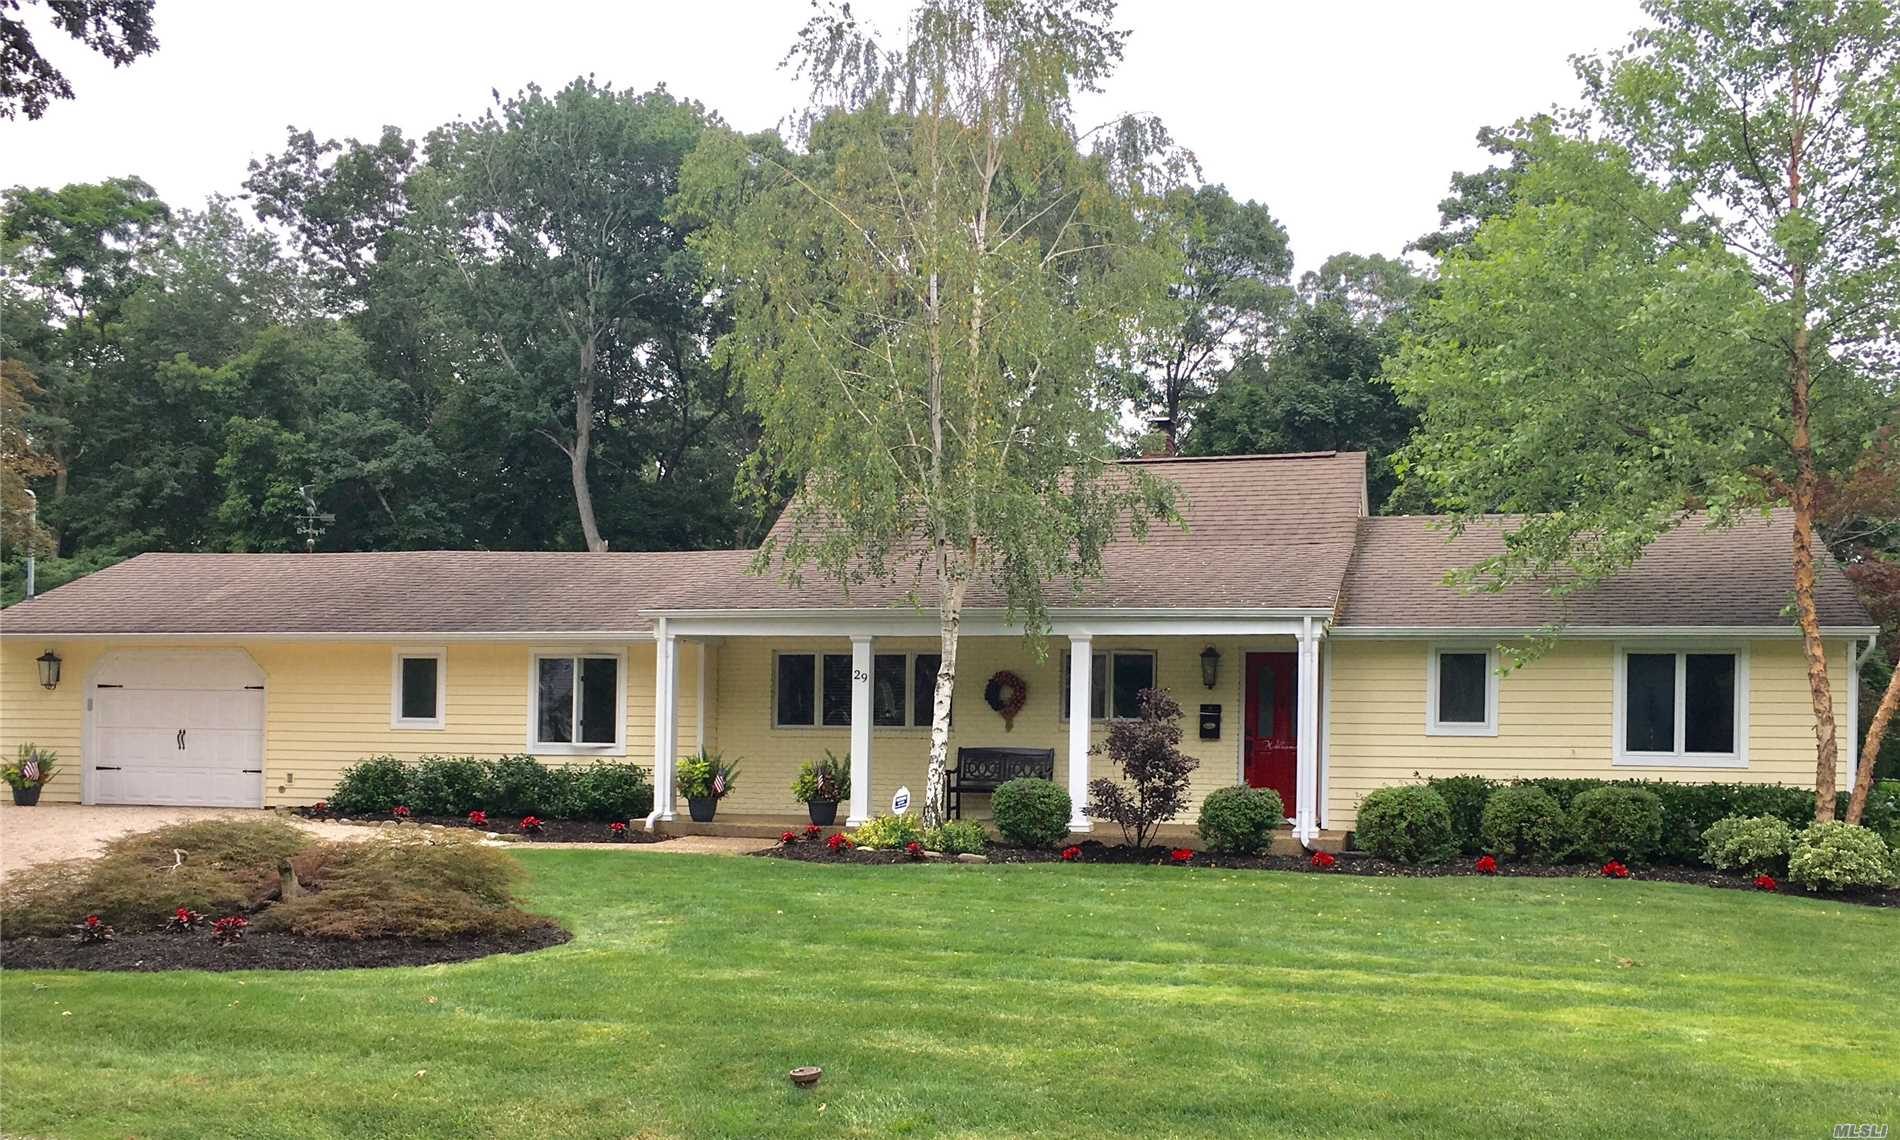 Amazing Location In Northport Village, This 7 Rm, 3-4 Bedroom, 2 Bath Farm Ranch Offers Mostly 1 Floor Living!!! Cac, Wood Burning Fireplace, 1.5 Car Attached Garage, .62 Flat Mid Block Acres Backs To Woods & Trails To Village. New Paver Patio,  Taxes $10, 326.65 With Star